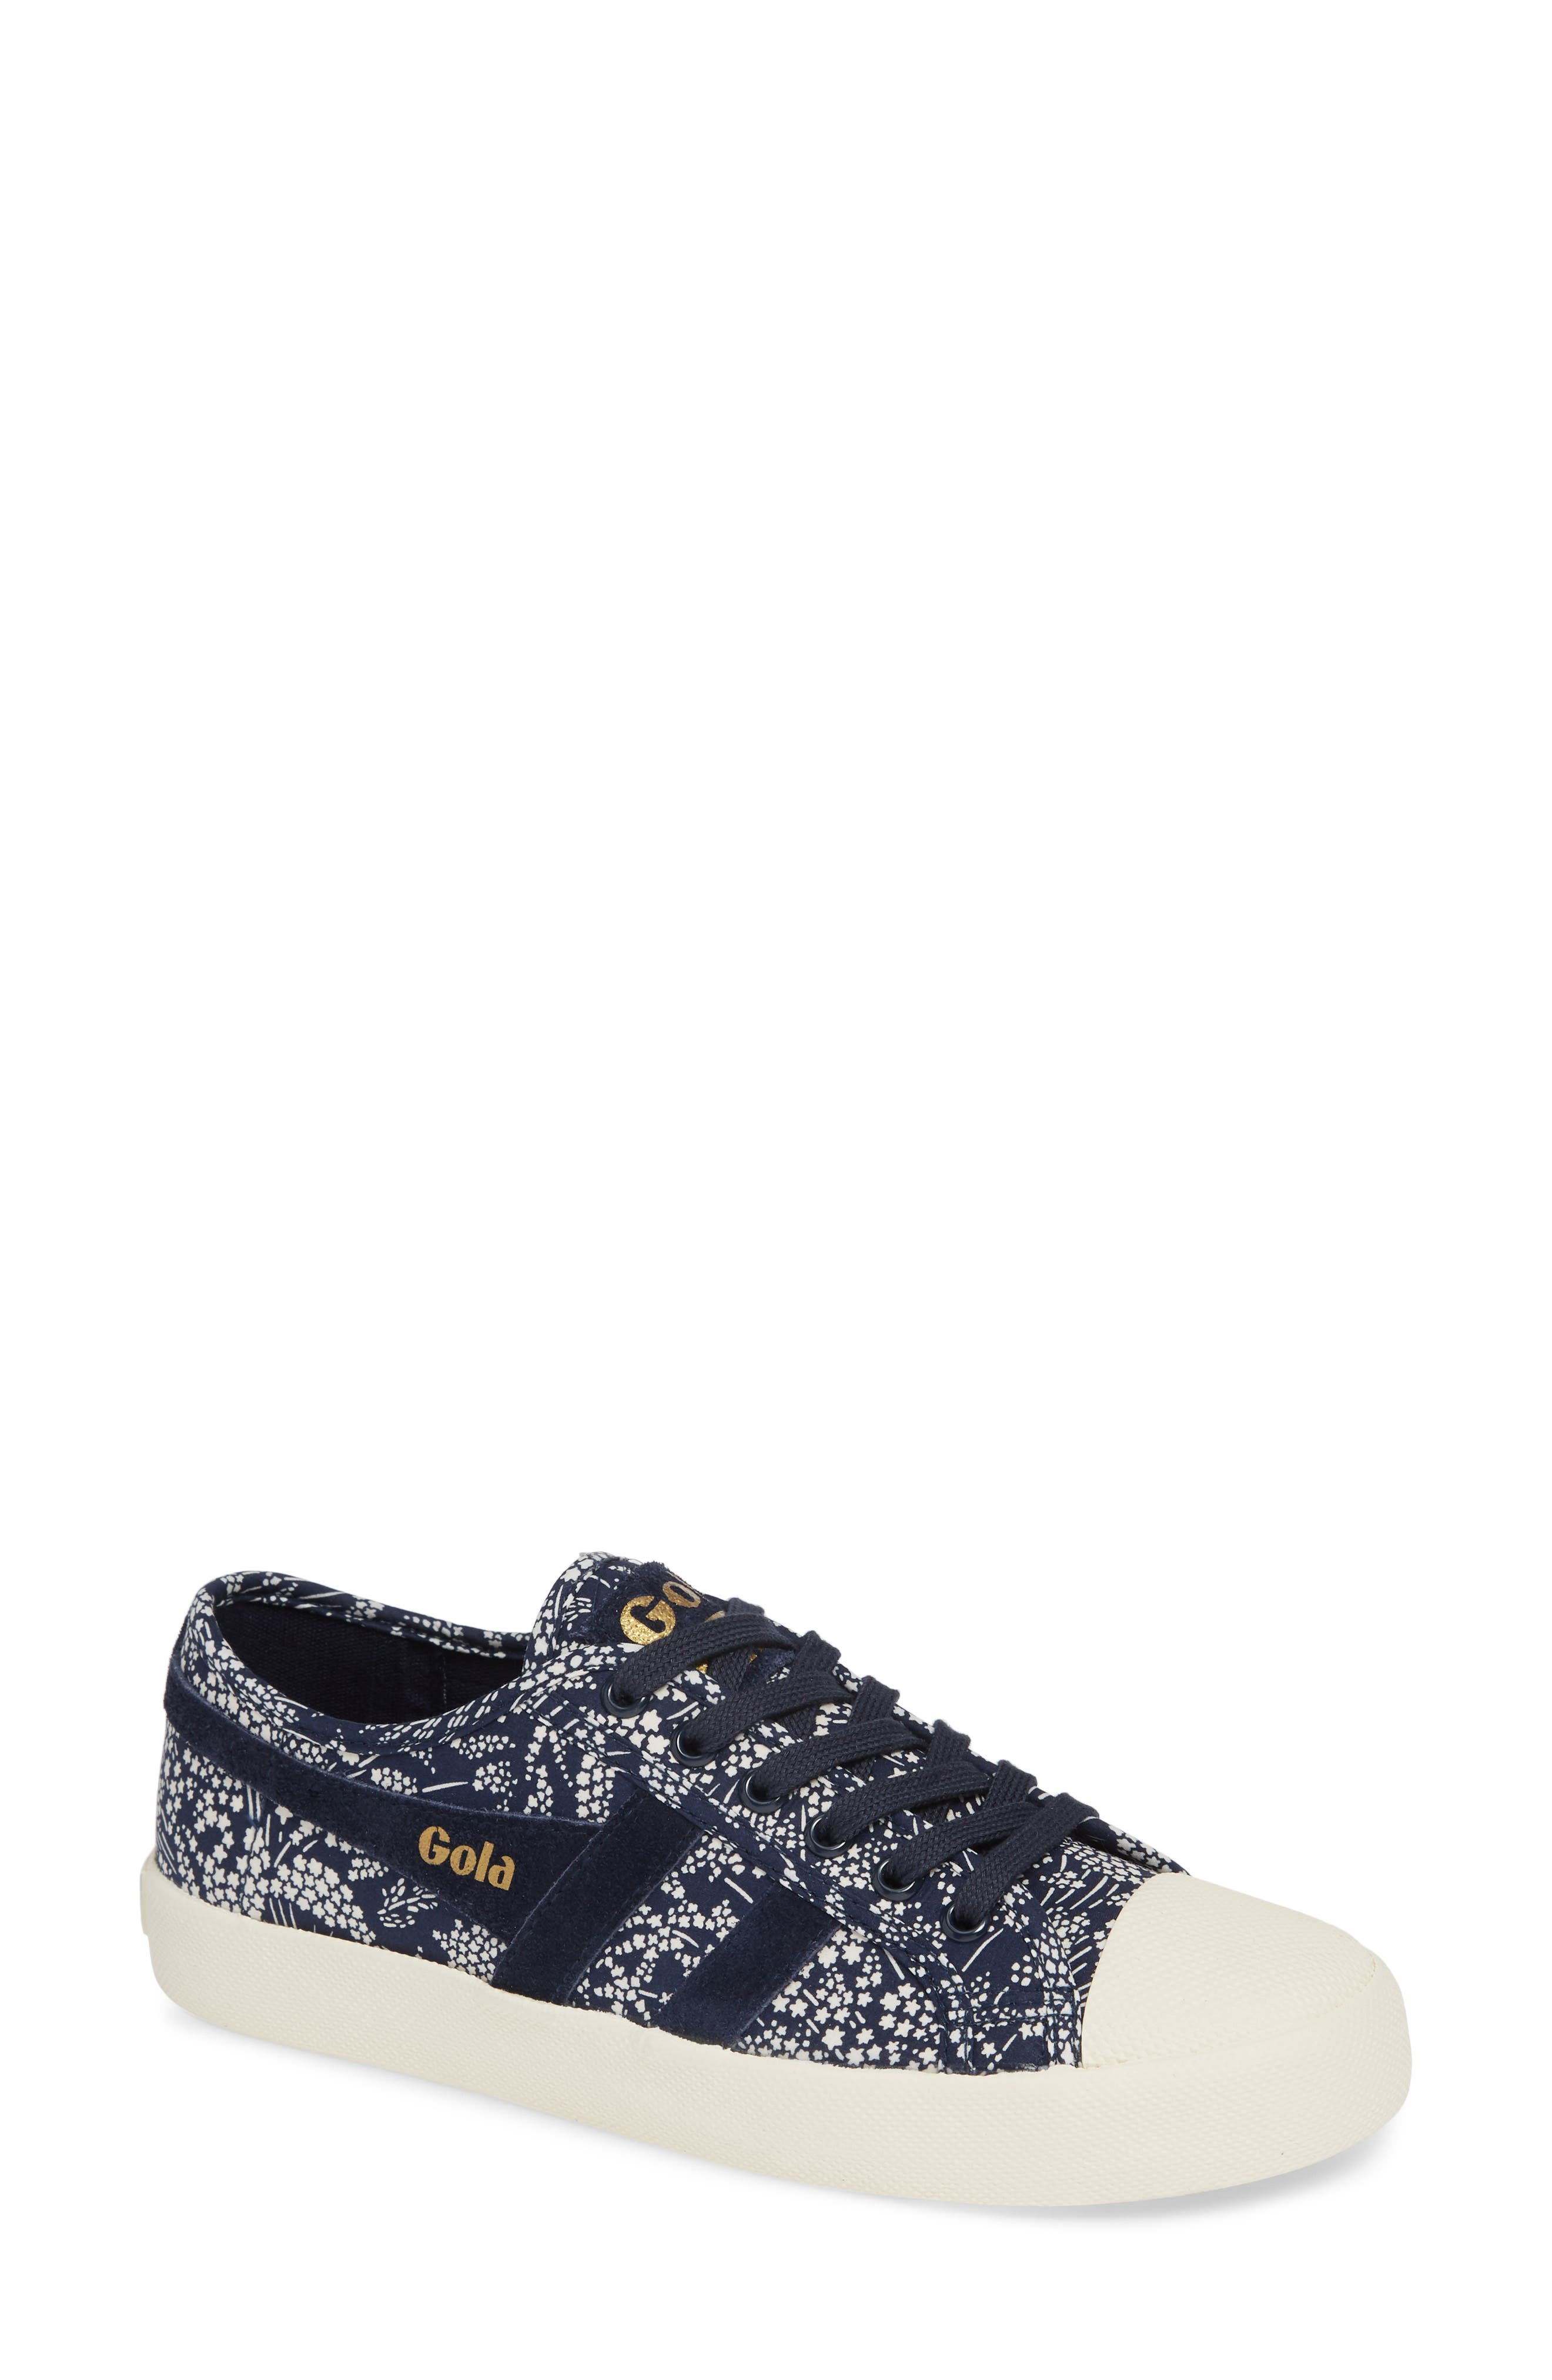 GOLA Coaster Liberty Sneaker in Navy/ Off White